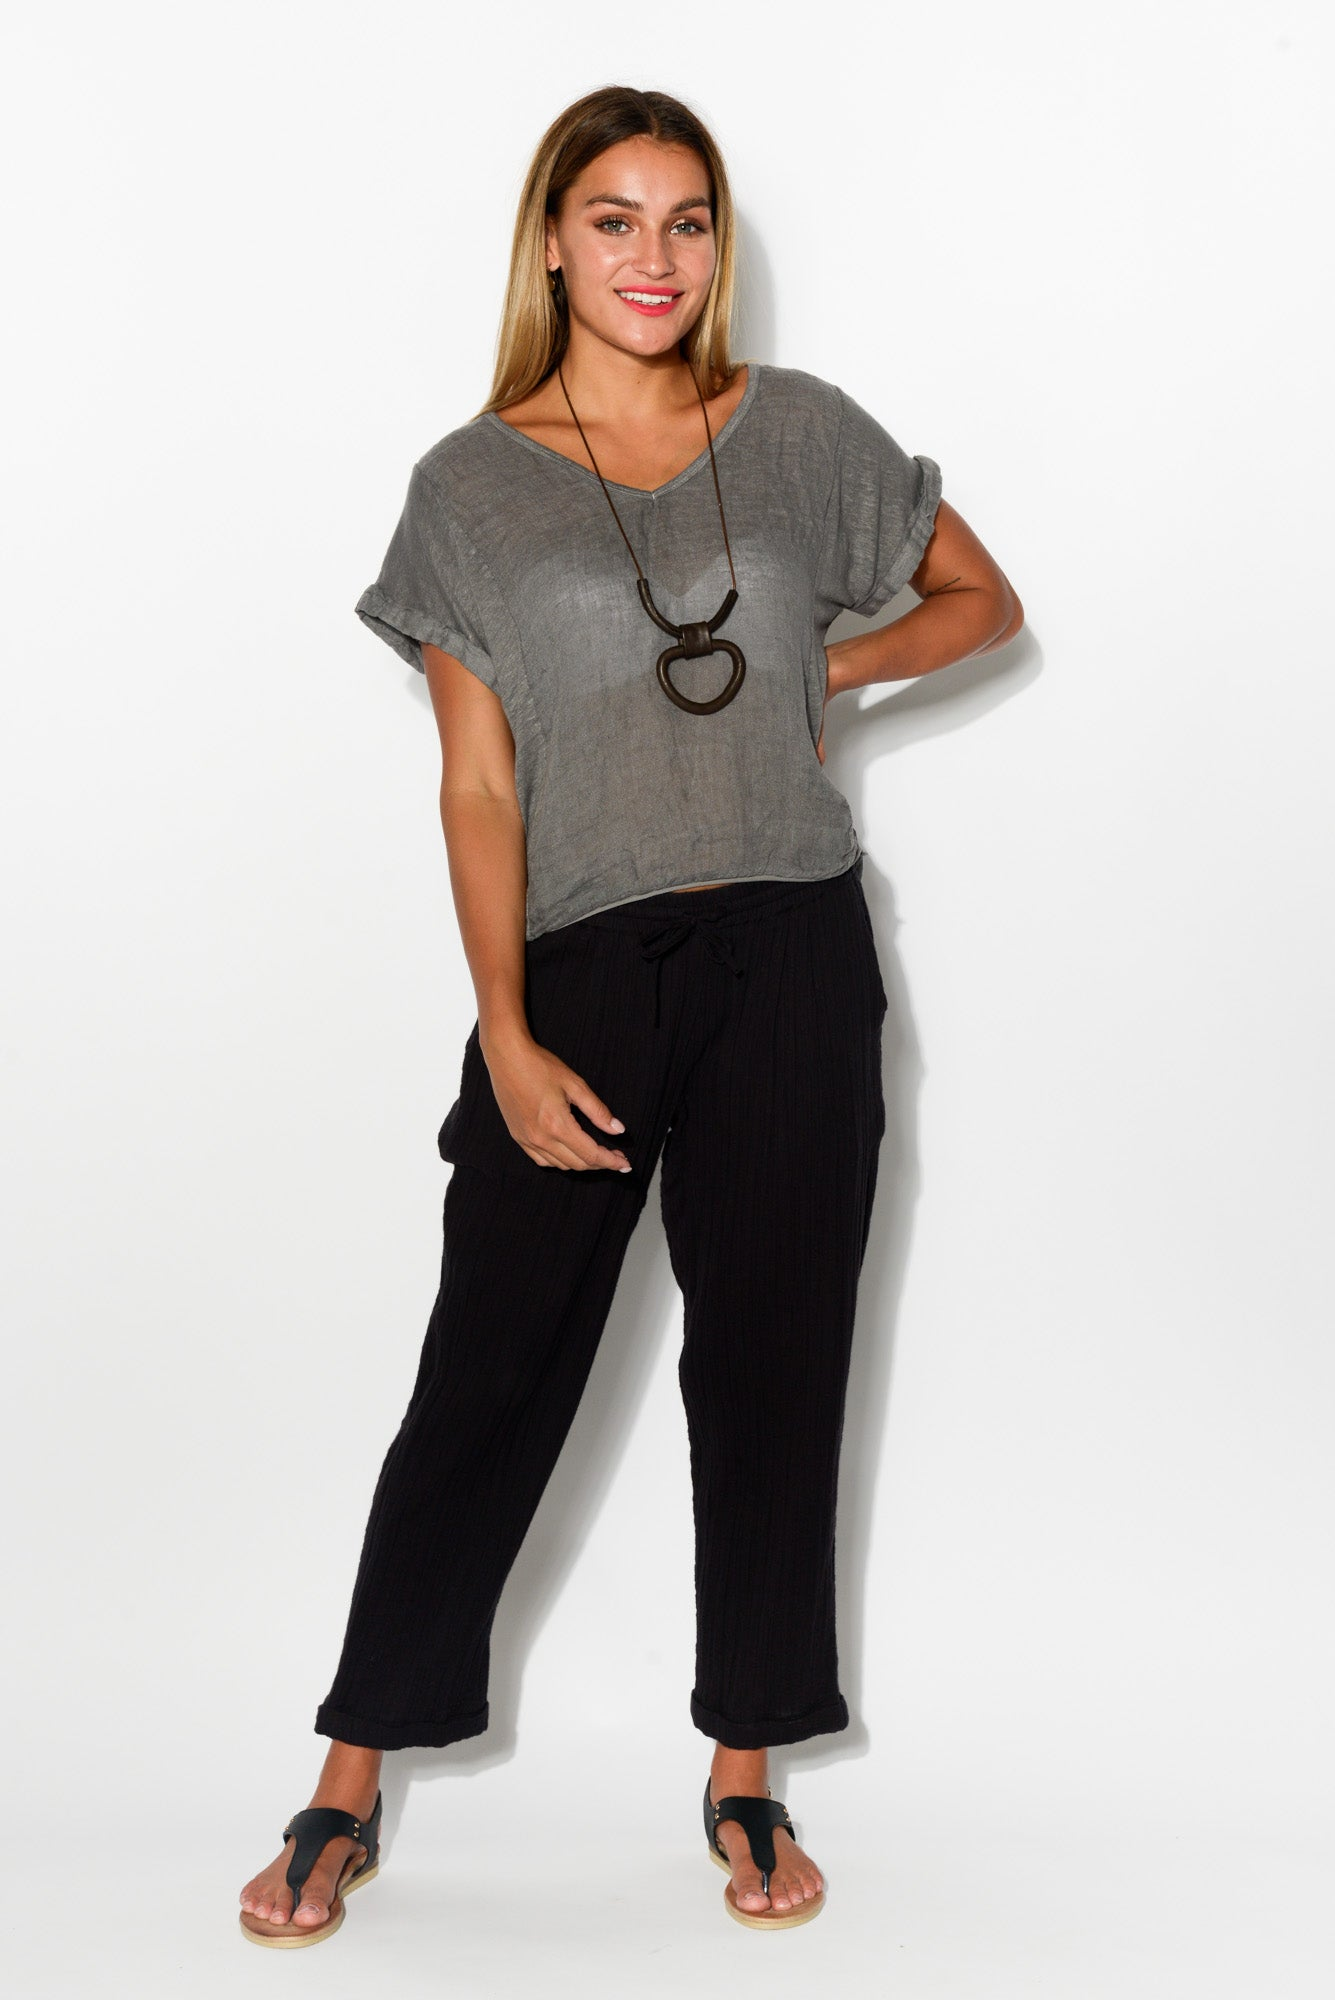 Black Bonded Cotton Pant - Blue Bungalow